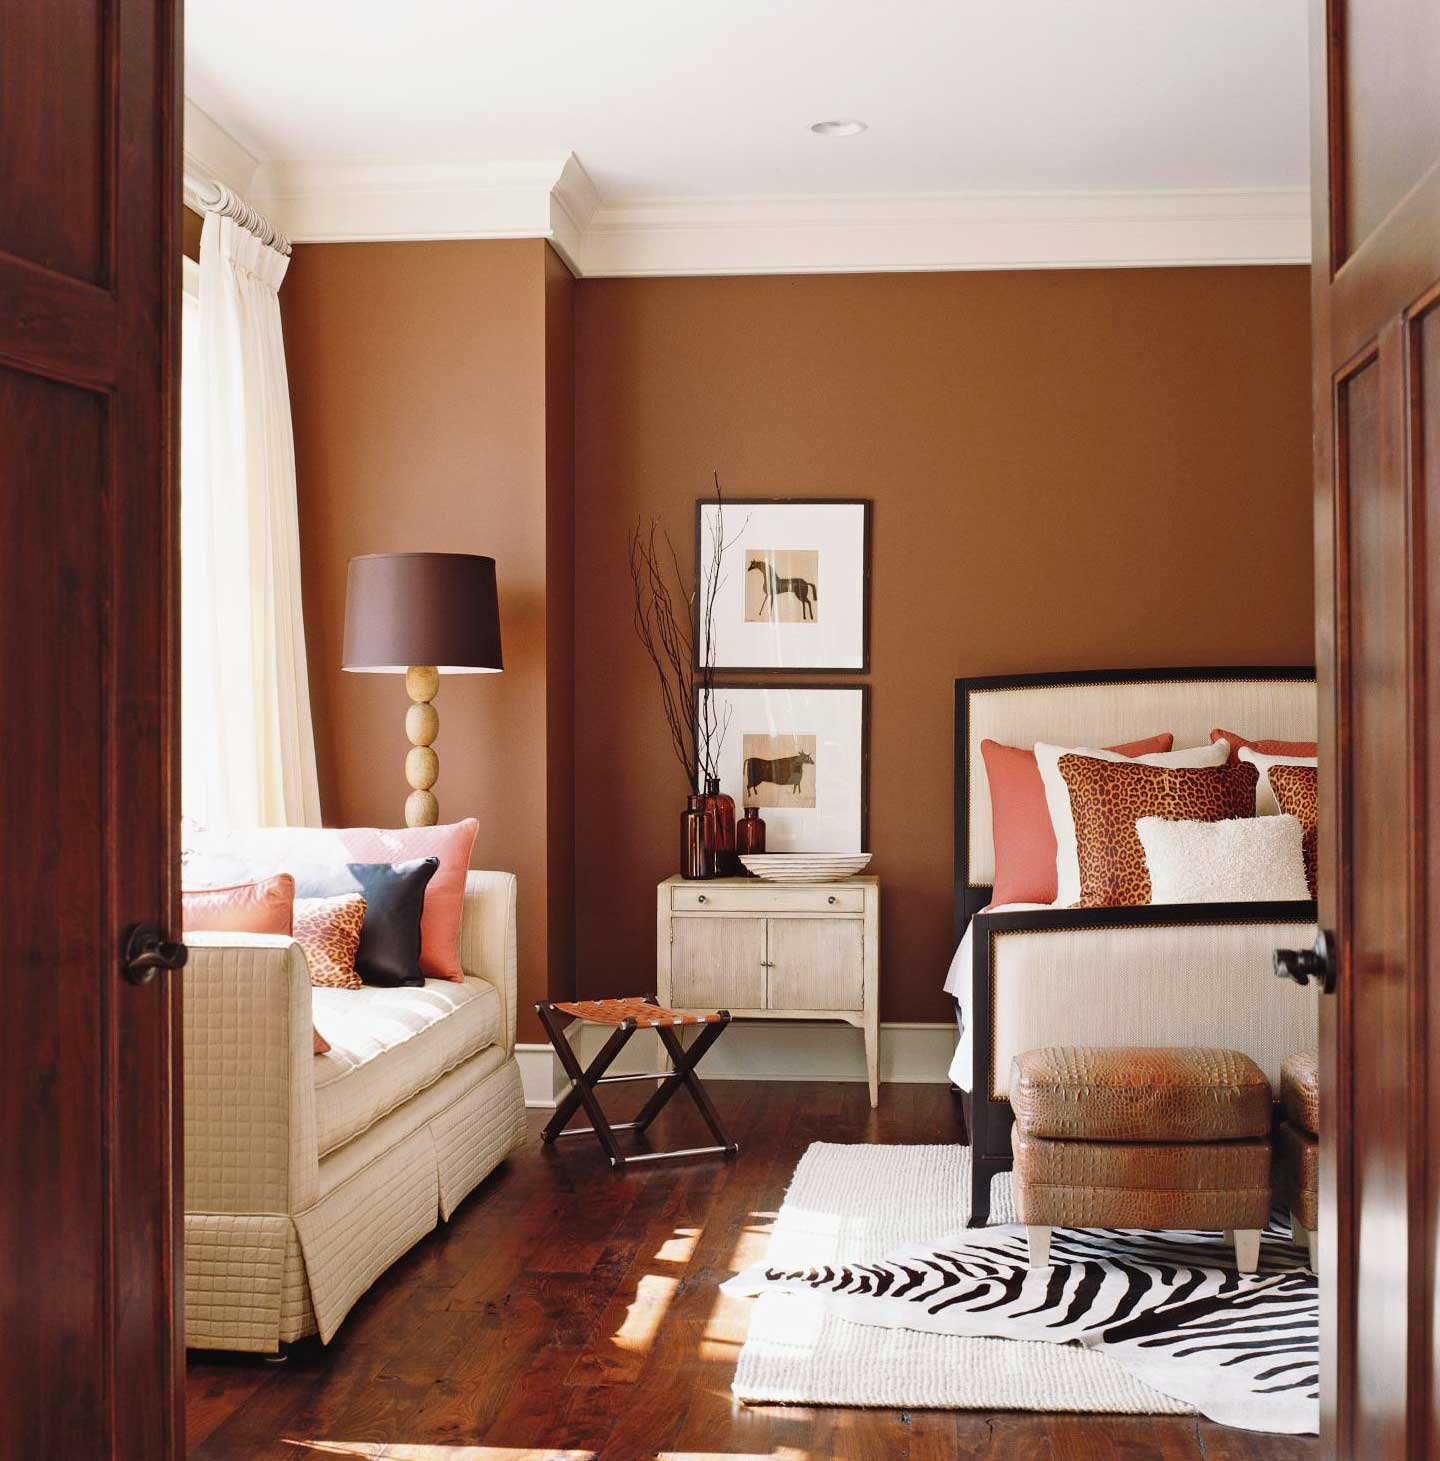 Comfort with warm brown